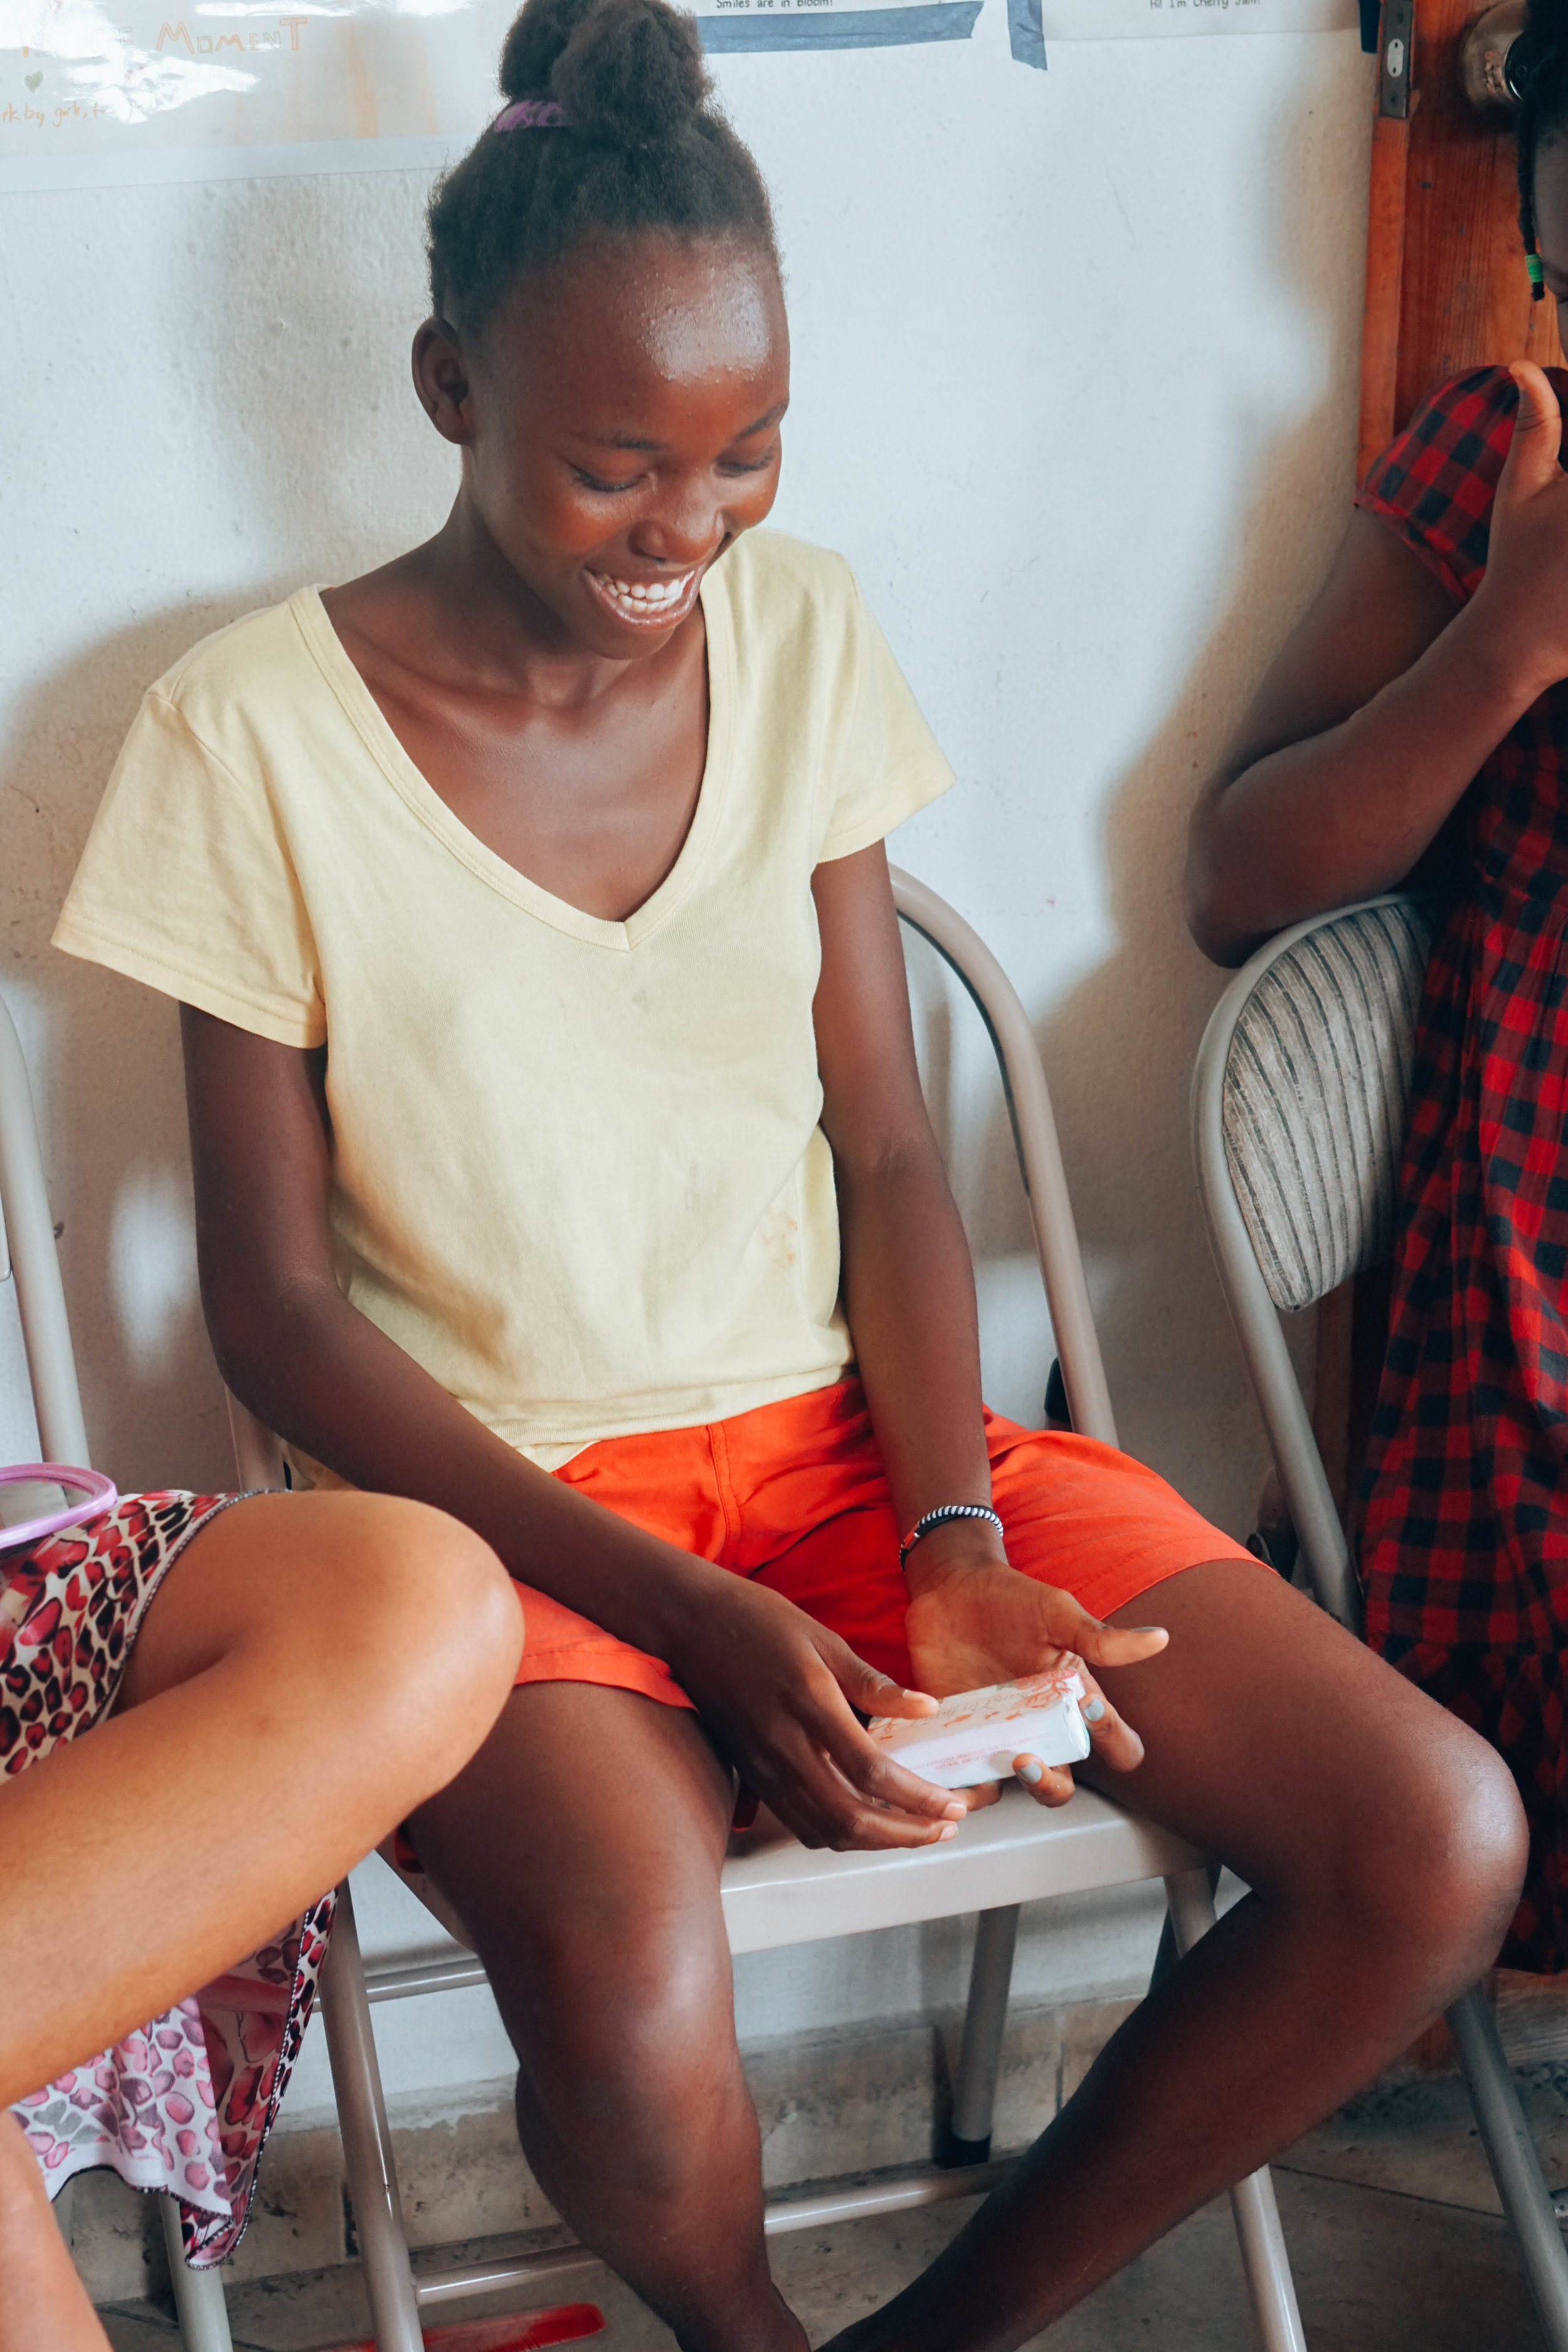 A young woman from Reveil Matinal Orphanage admires her illustrated bar soap wrapper. Image: Jen Morilla